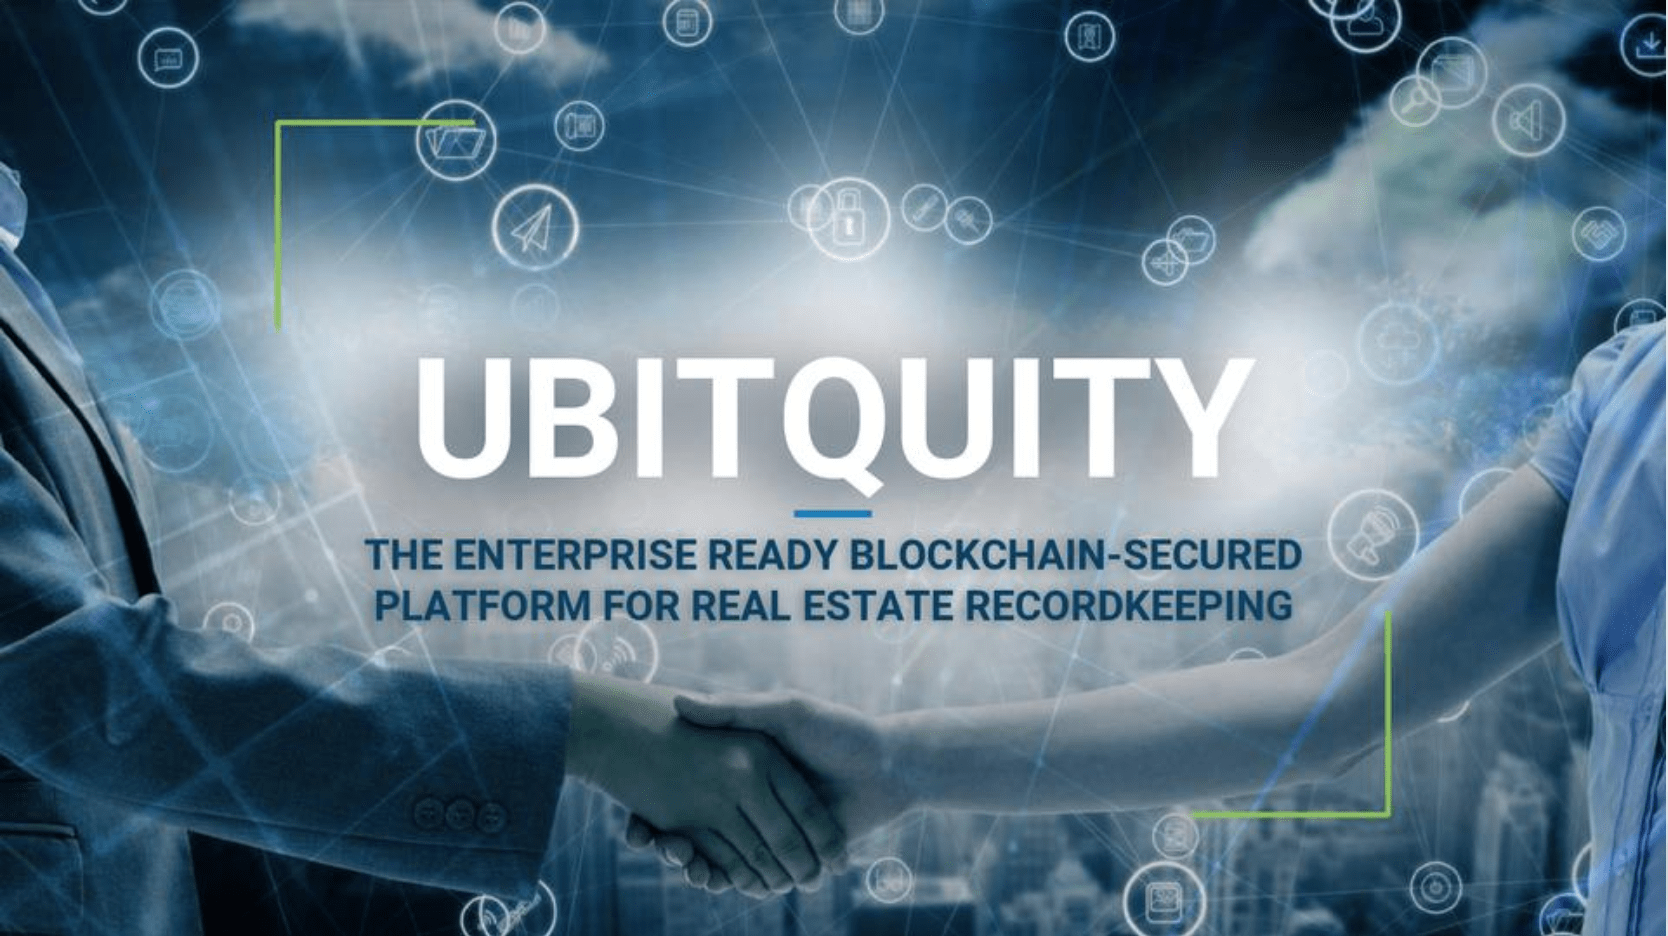 Ubitquity (May 2019)